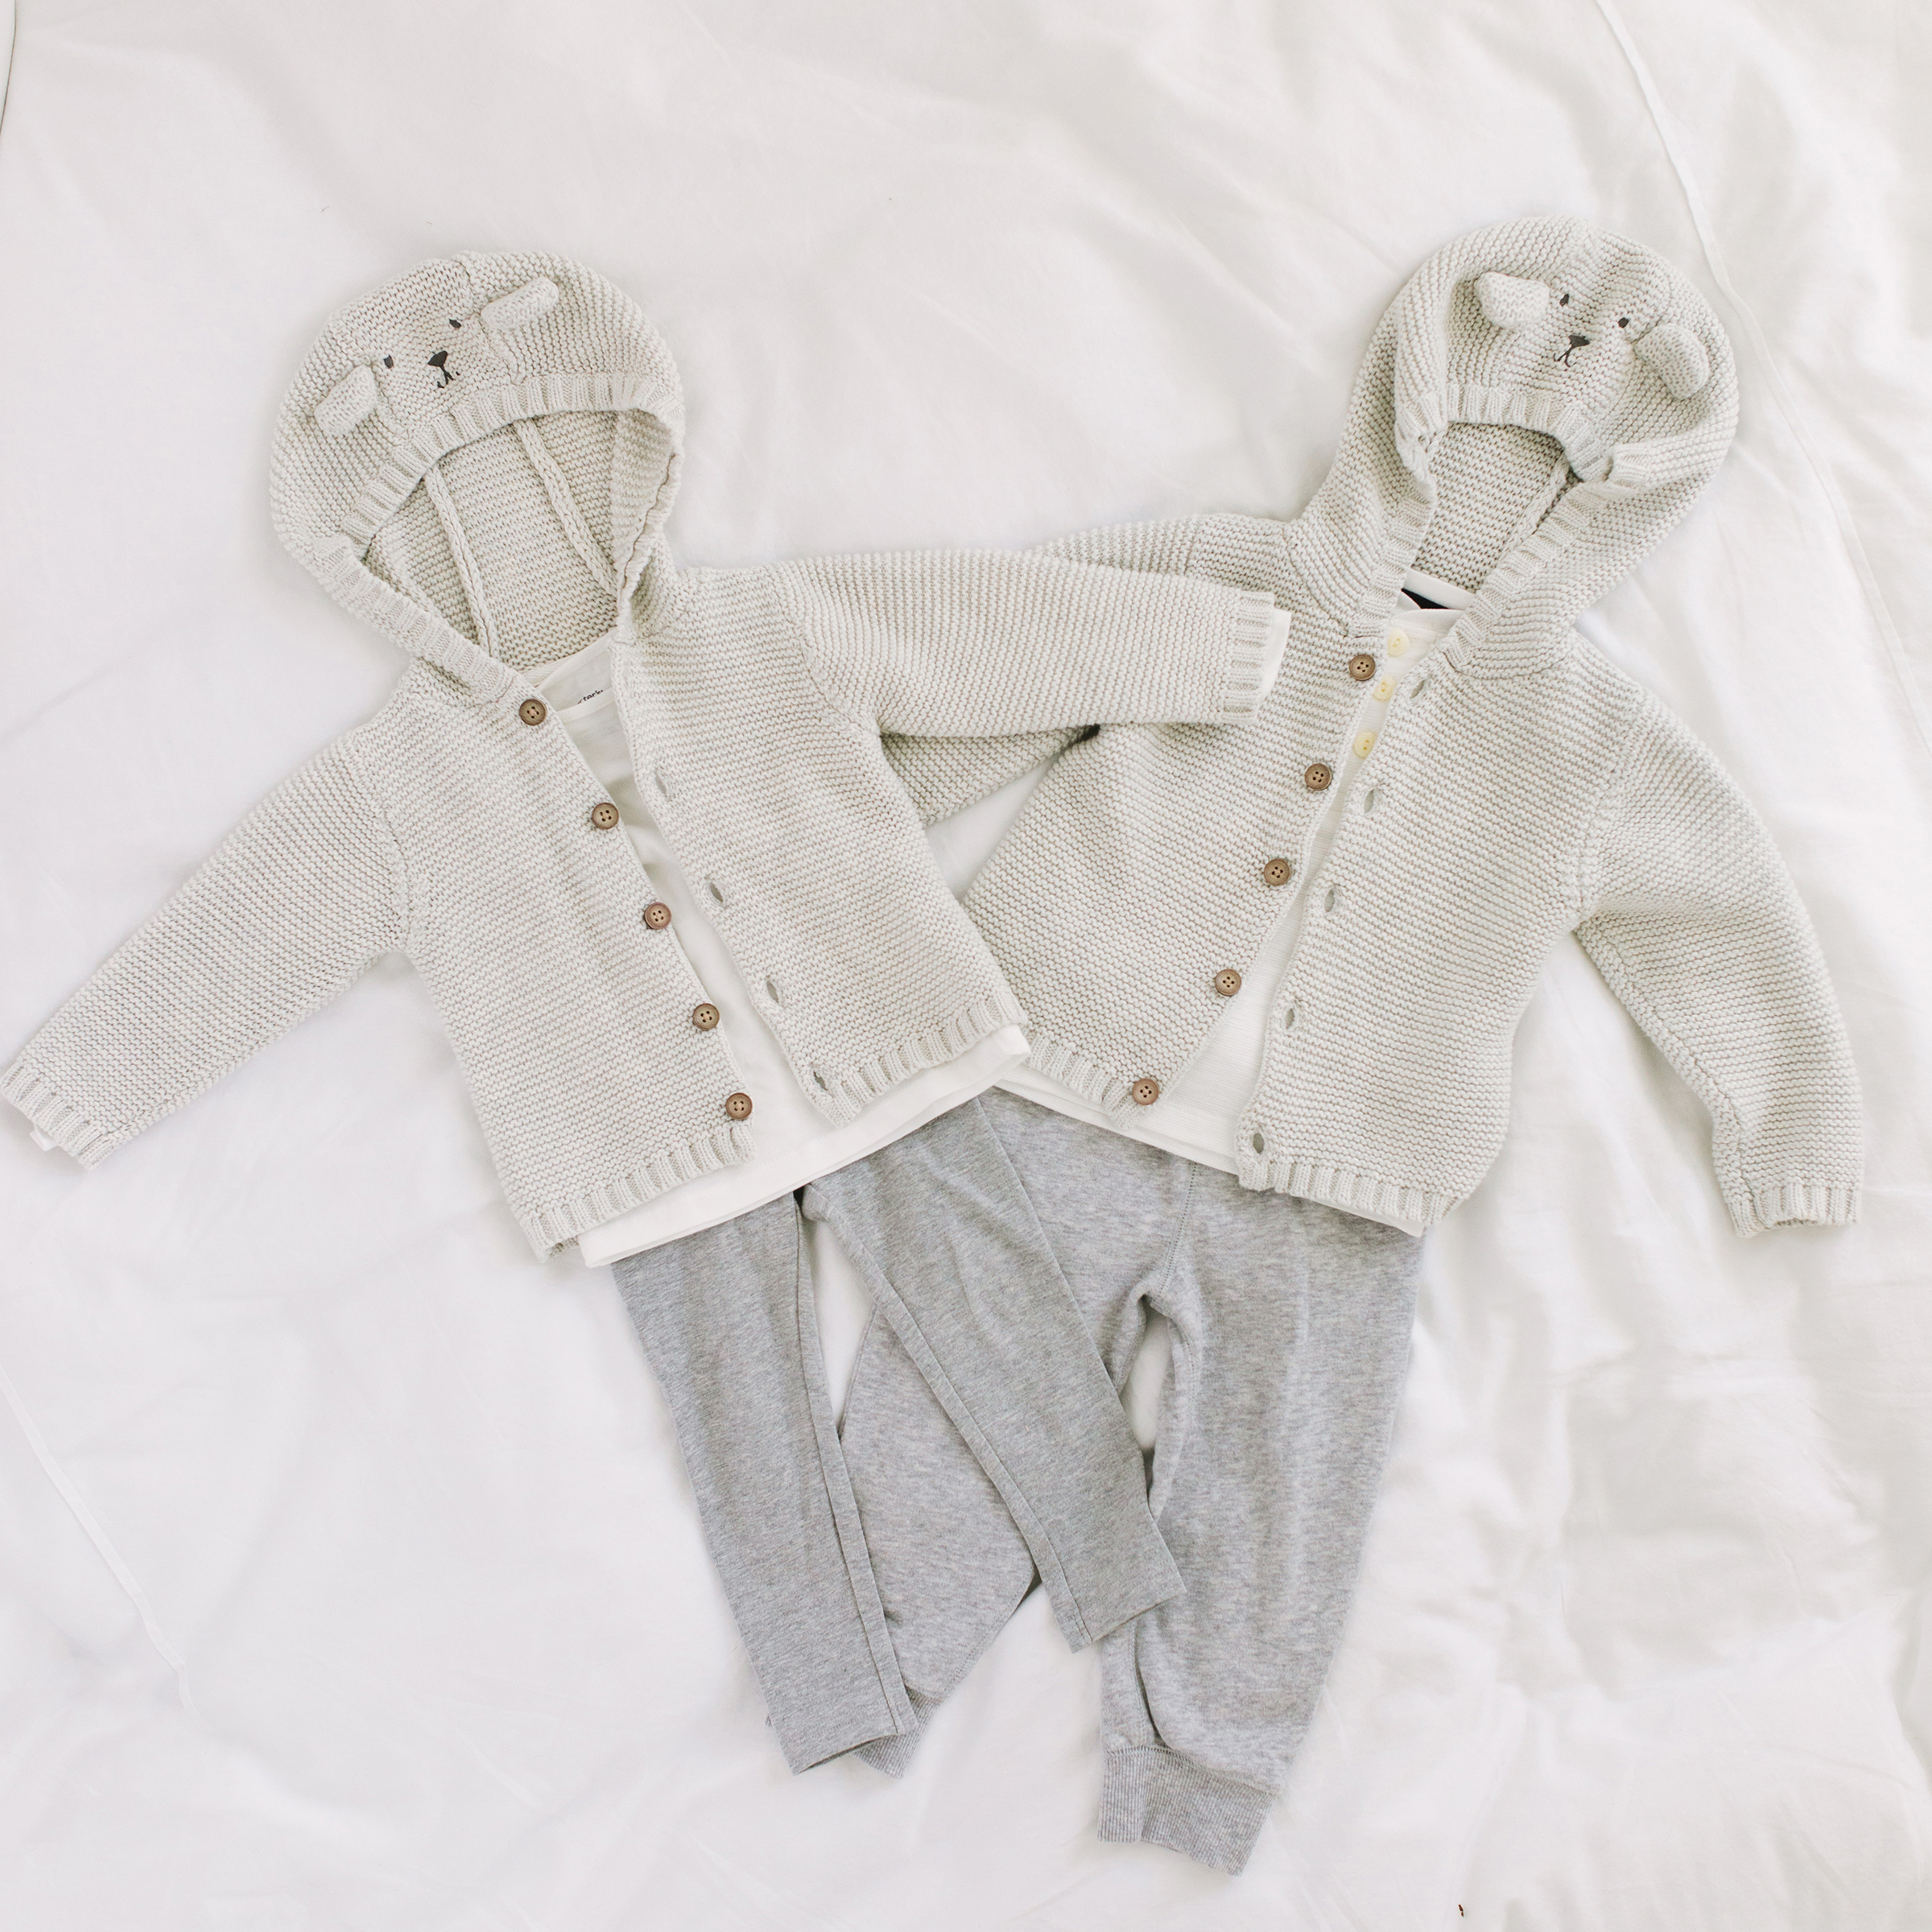 gender neutral outfit by Carters from JCPenny